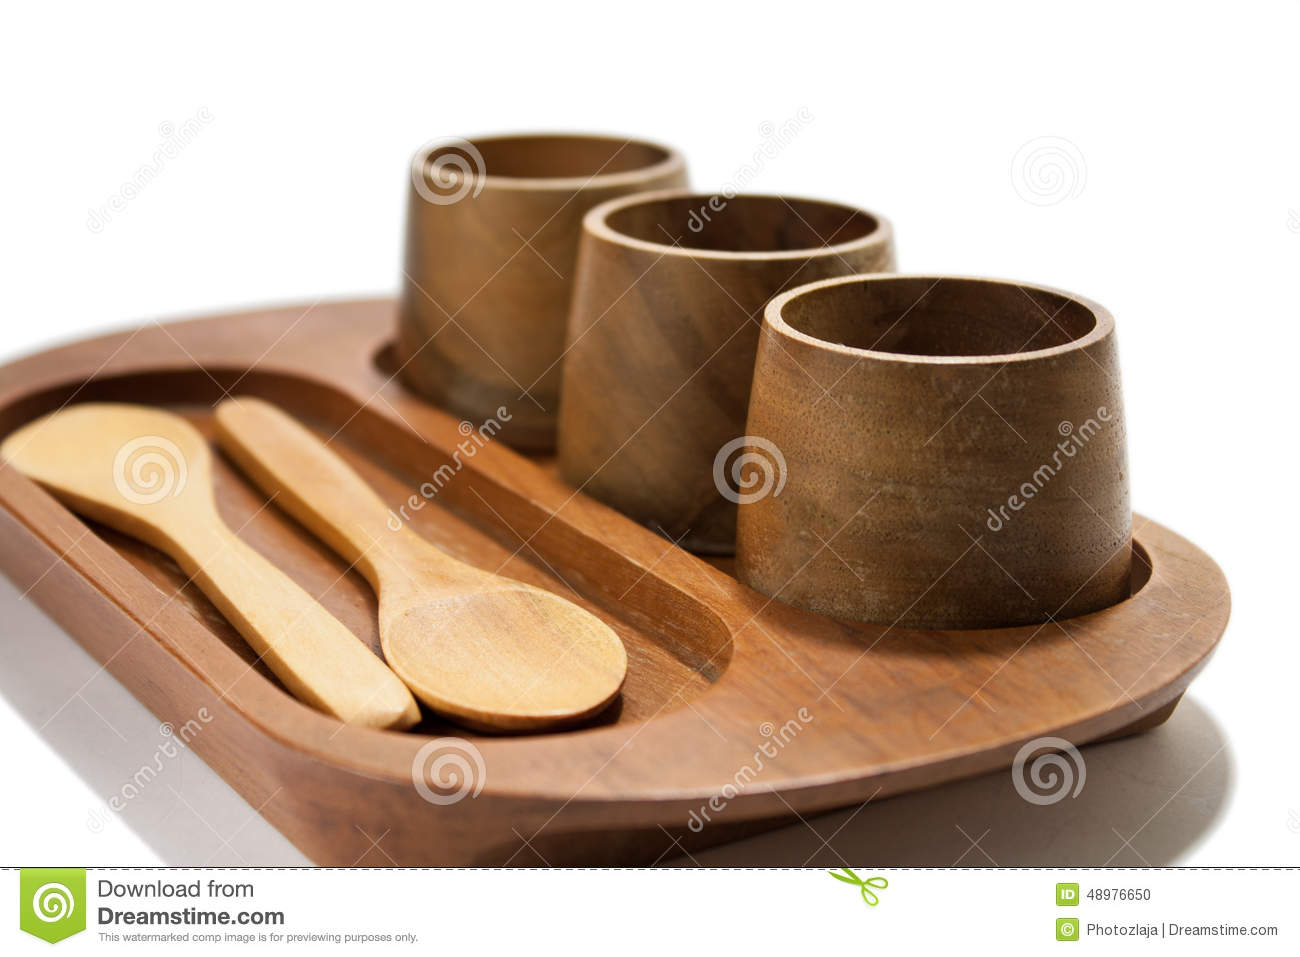 Wooden Cups And Spoons On The Wooden Holder Stock Photo - Image ...